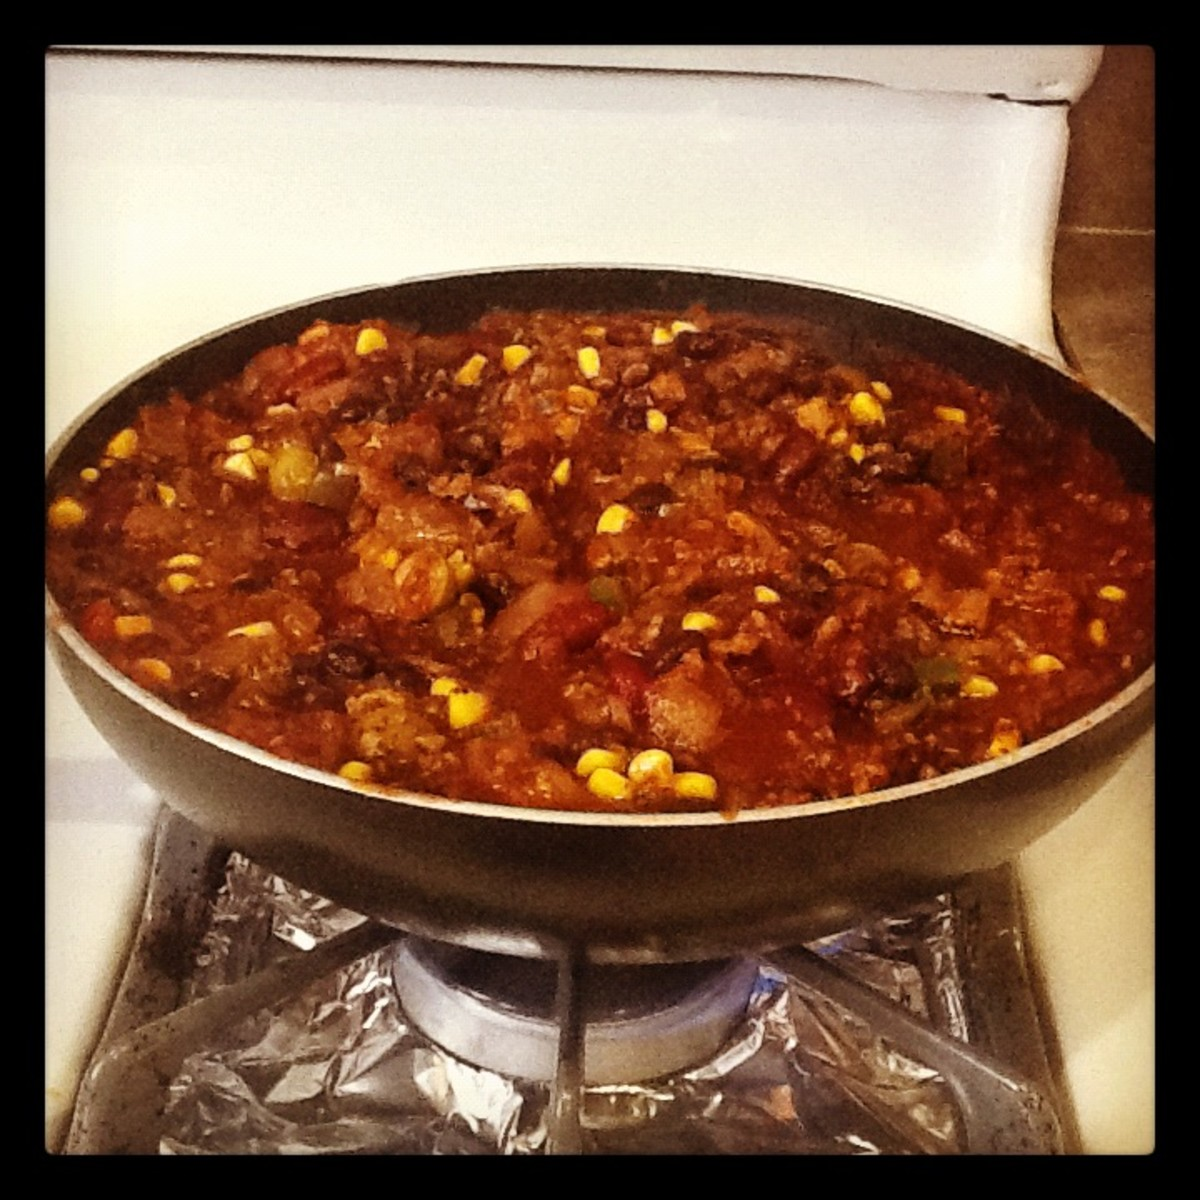 This is vegetarian chili made with TVP crumble.